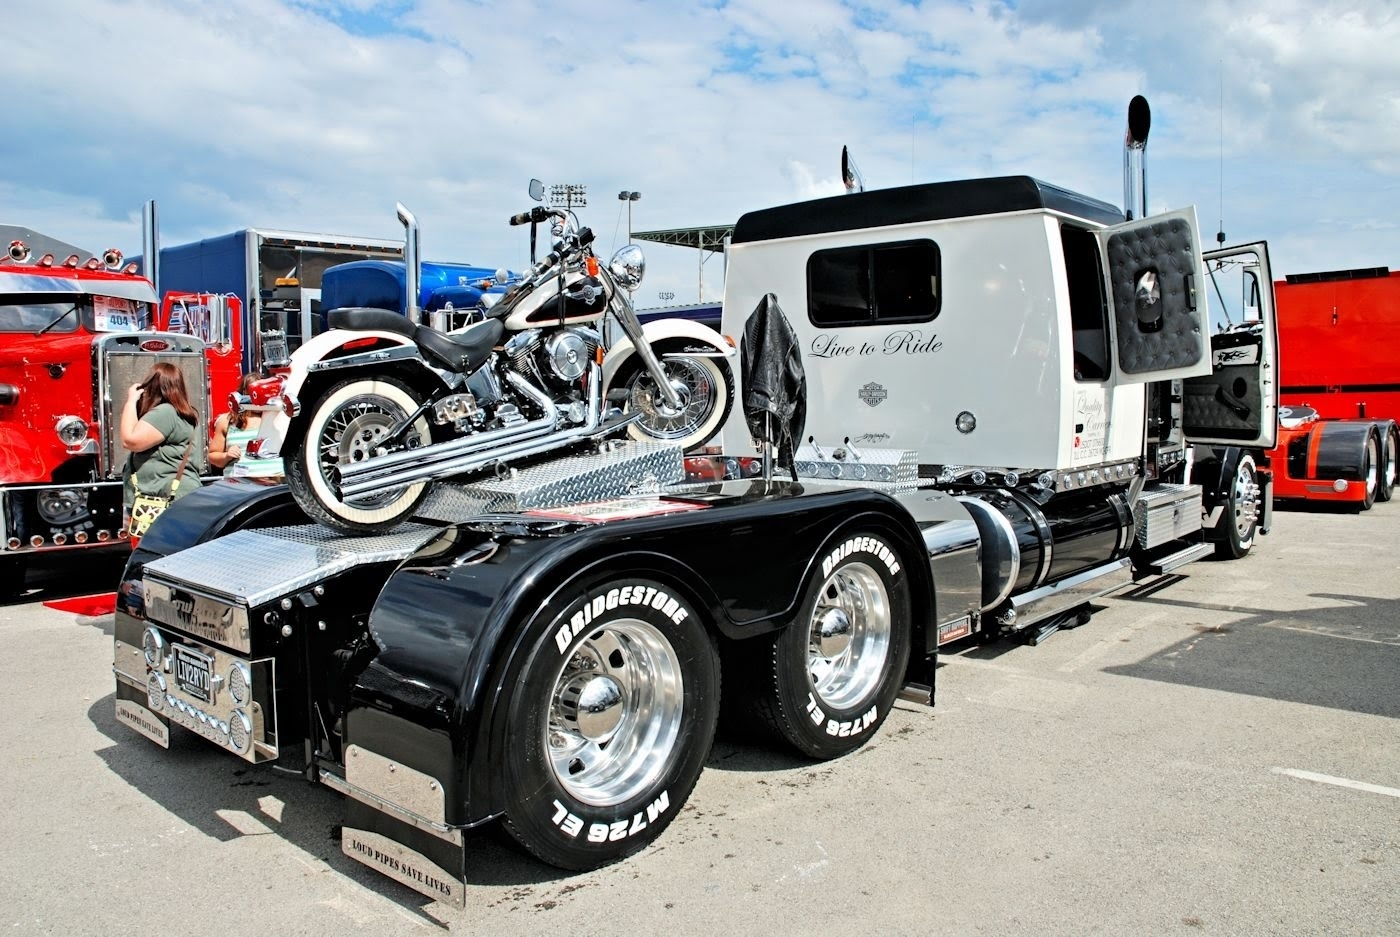 custom big rigs, trucks, custom bikes & beautiful babes - youtube